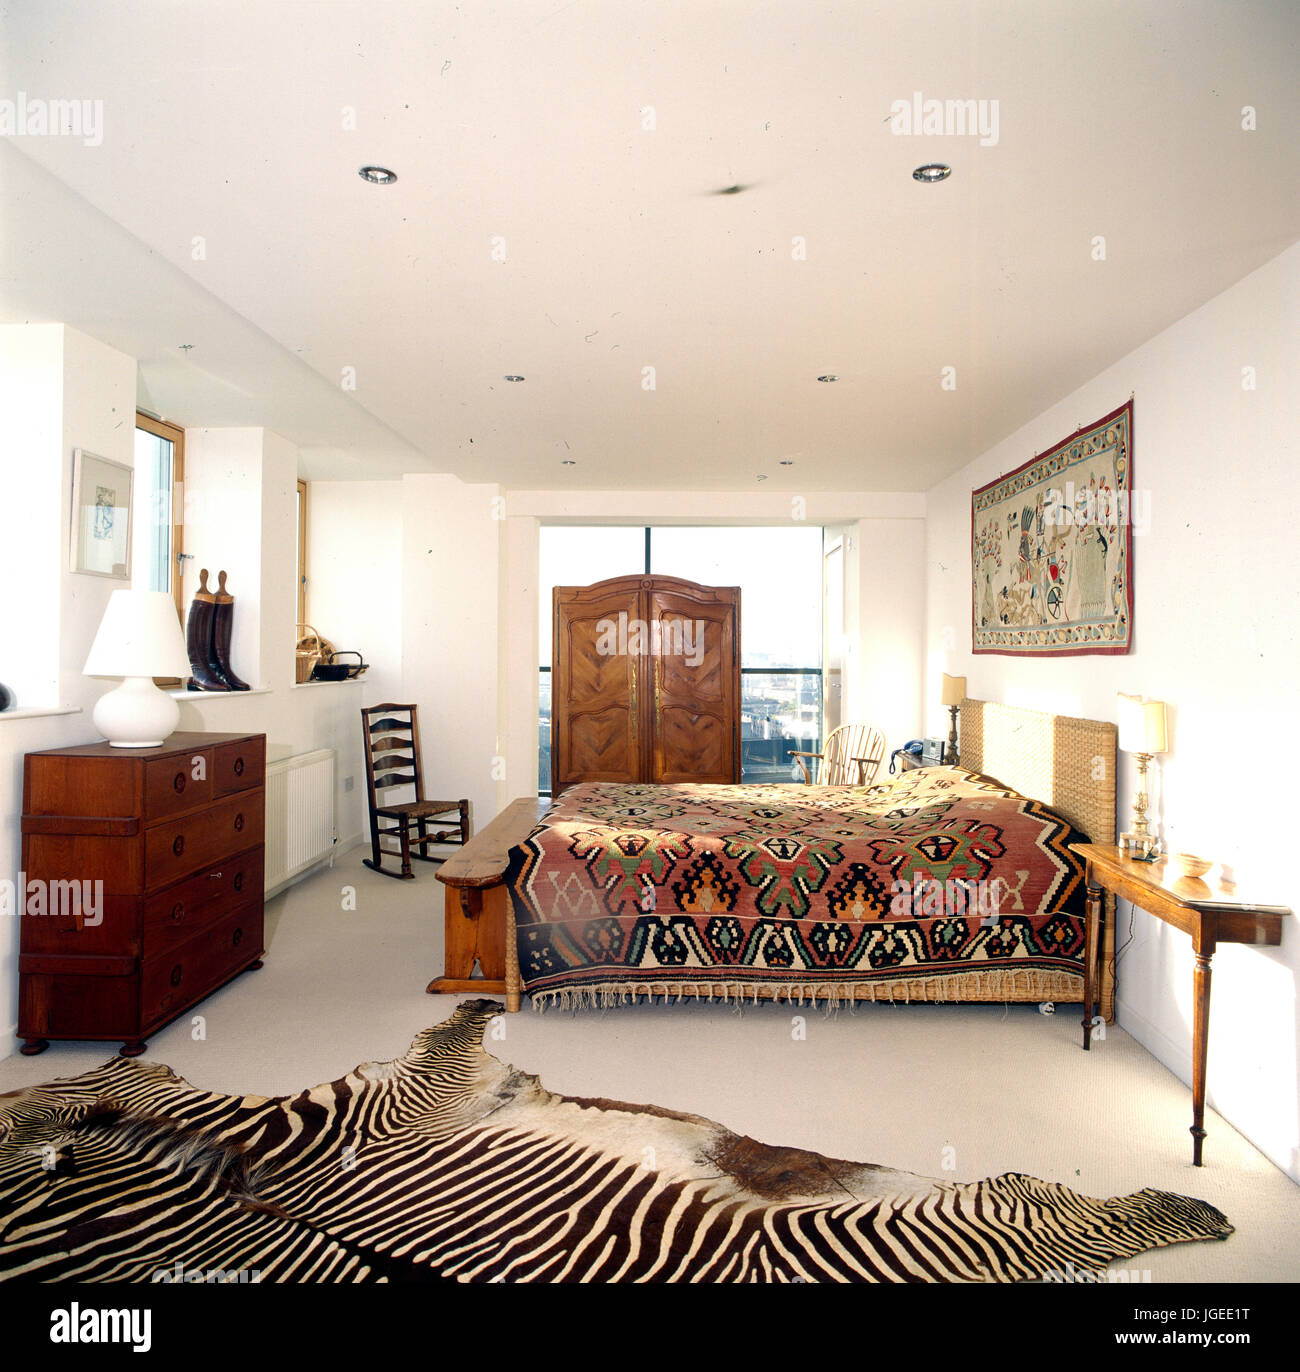 Zebra skin rug in modern bedroom with traditional furniture and a bed covered with a Kelim rug - Stock Image